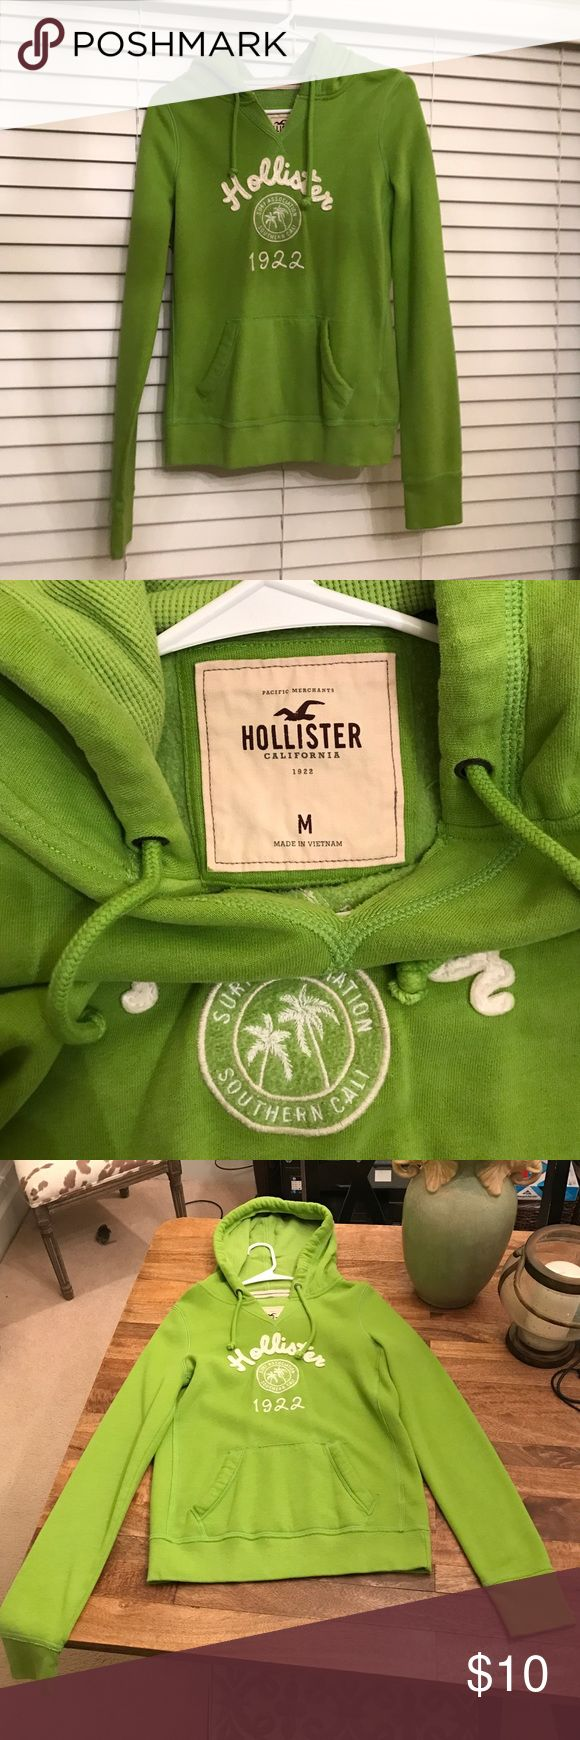 Green Hollister Sweatshirt Size Medium It has been worn few times; it feels and looks like new. Hollister Tops Sweatshirts & Hoodies